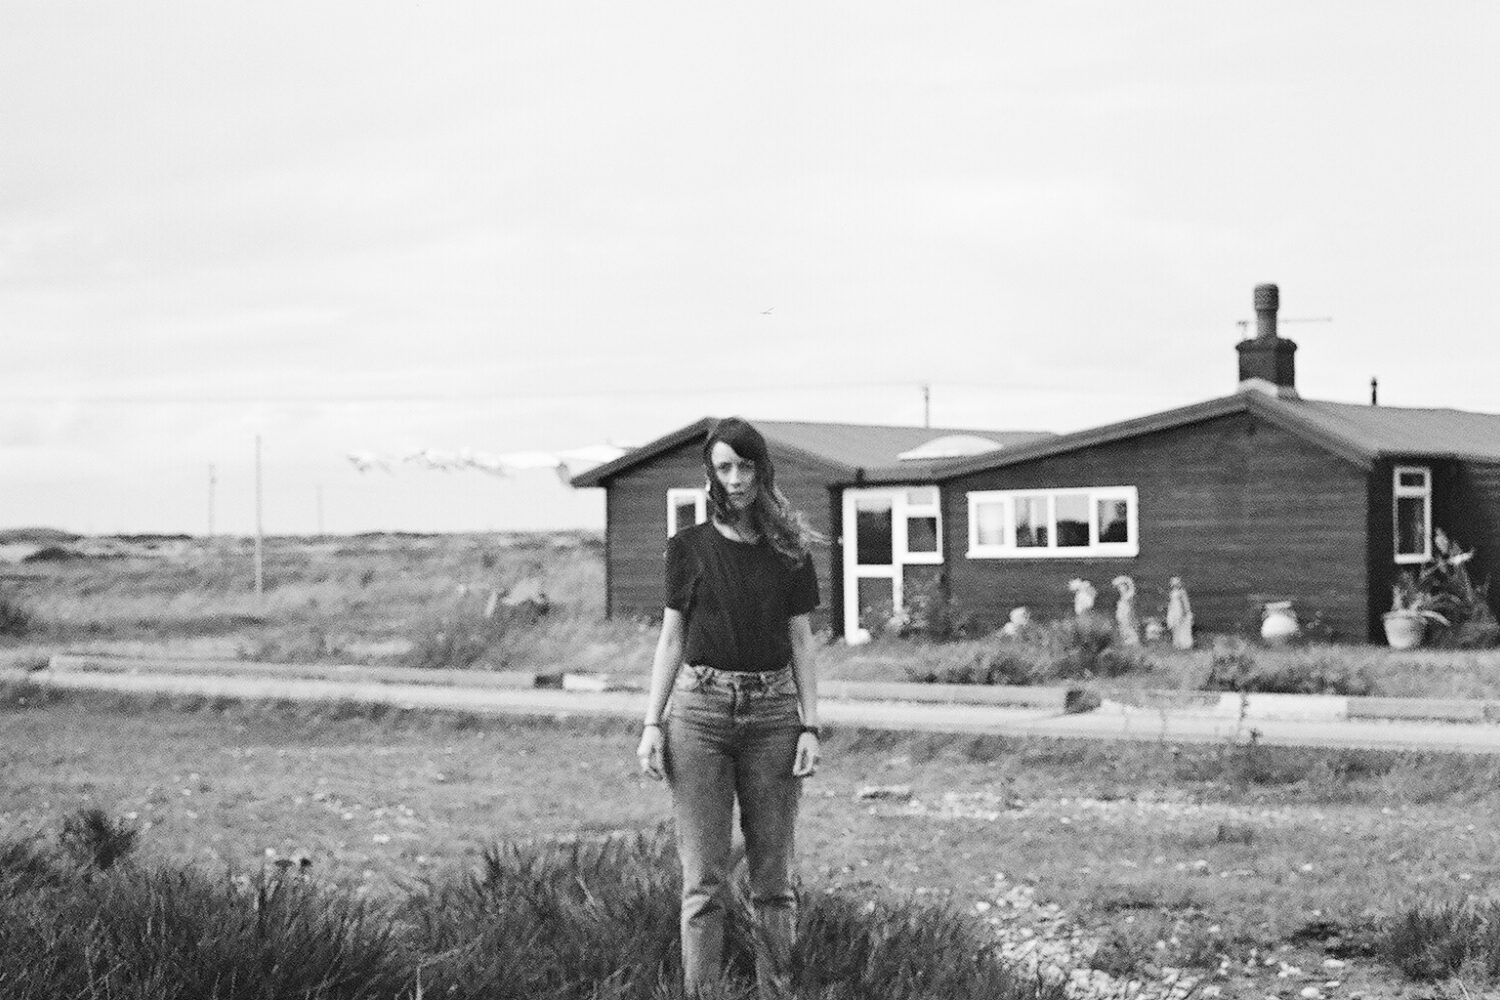 Bryde gives into 'Desire' on her new track